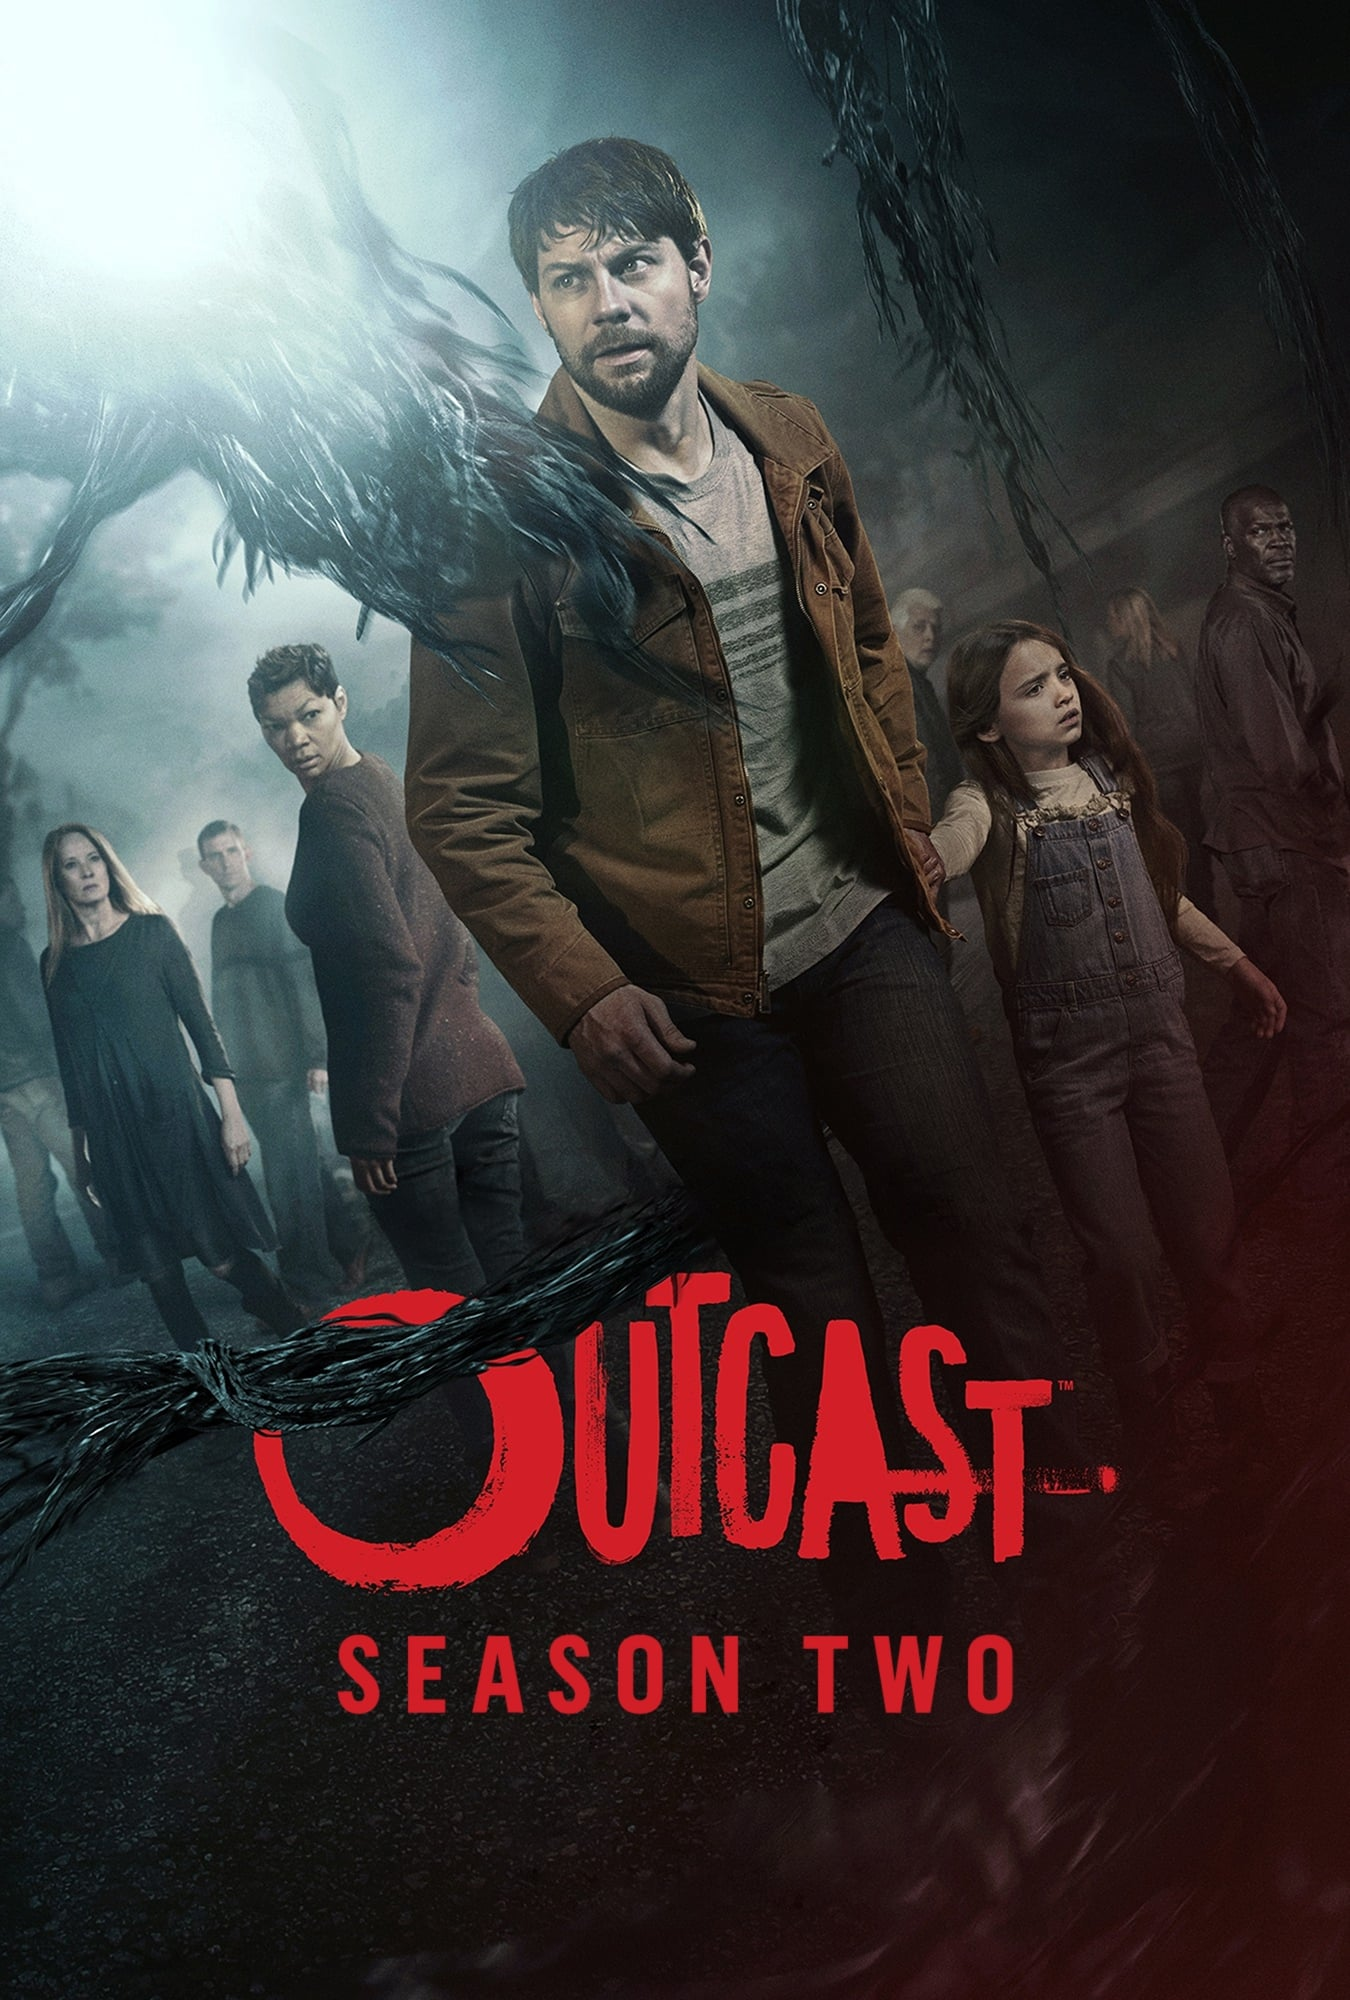 OUTCAST SEASON 2 putlocker 4k